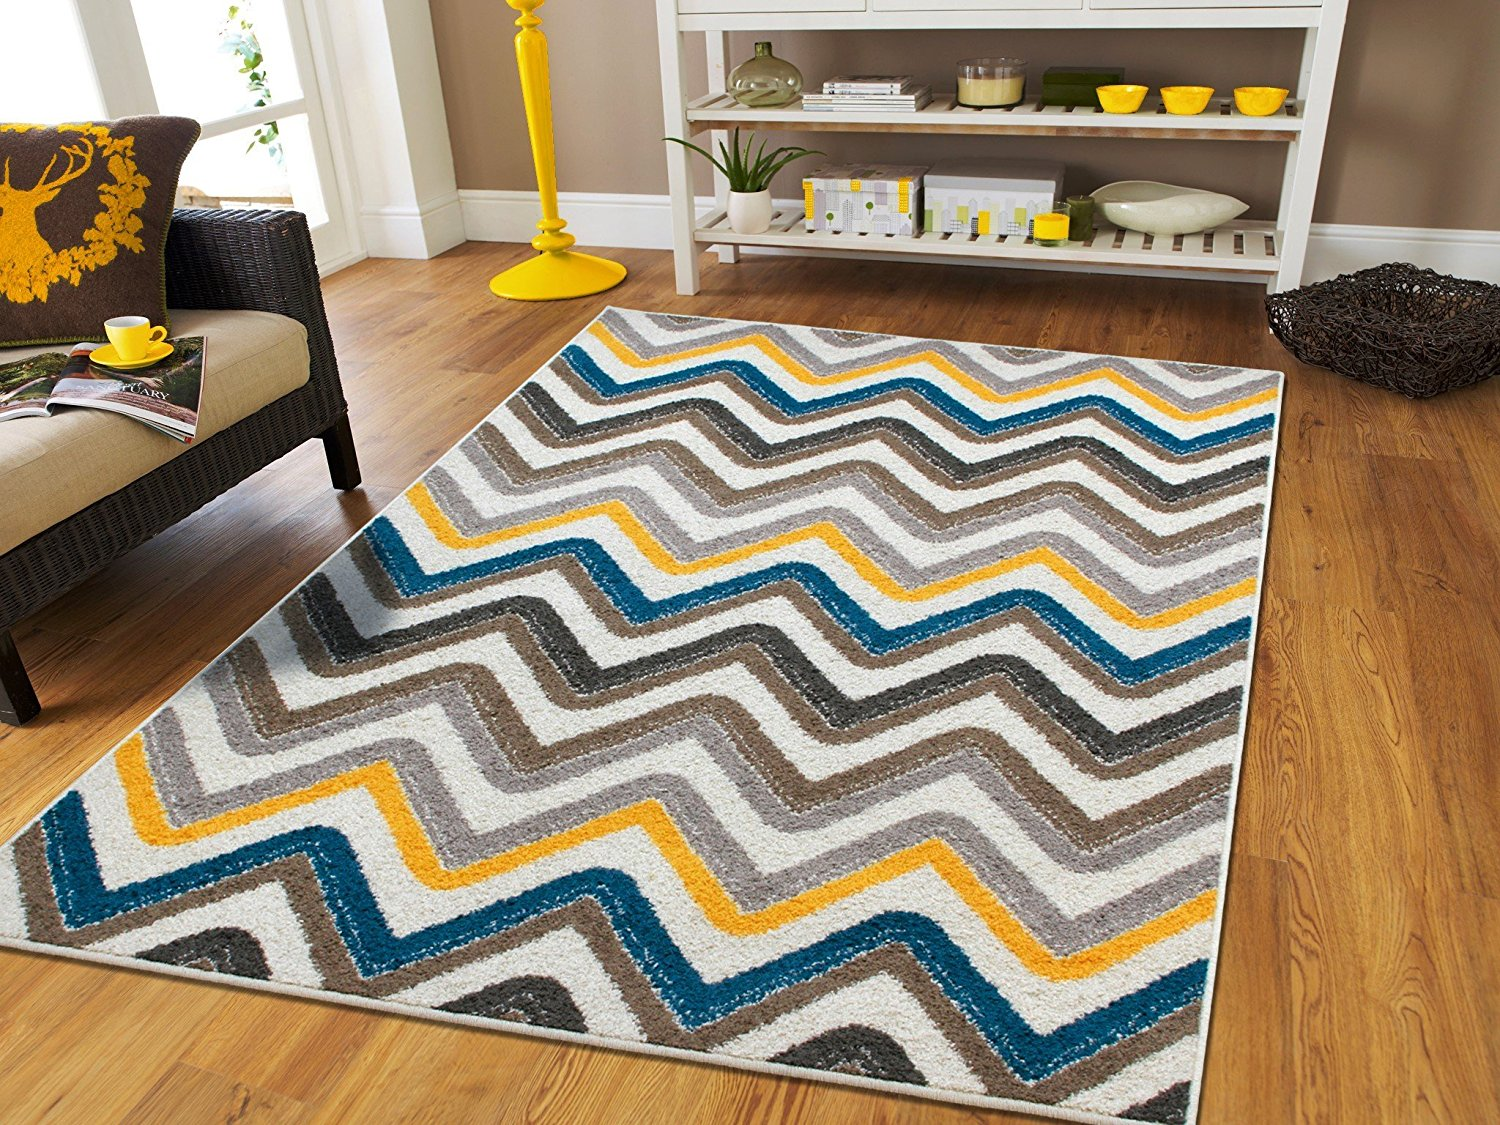 New fashion luxury chevron rugs for living room zig zag rugs 2x4 contemporary rug mat blue and grey yellow beige kitchen floor rug 2x3 rugs walmart com